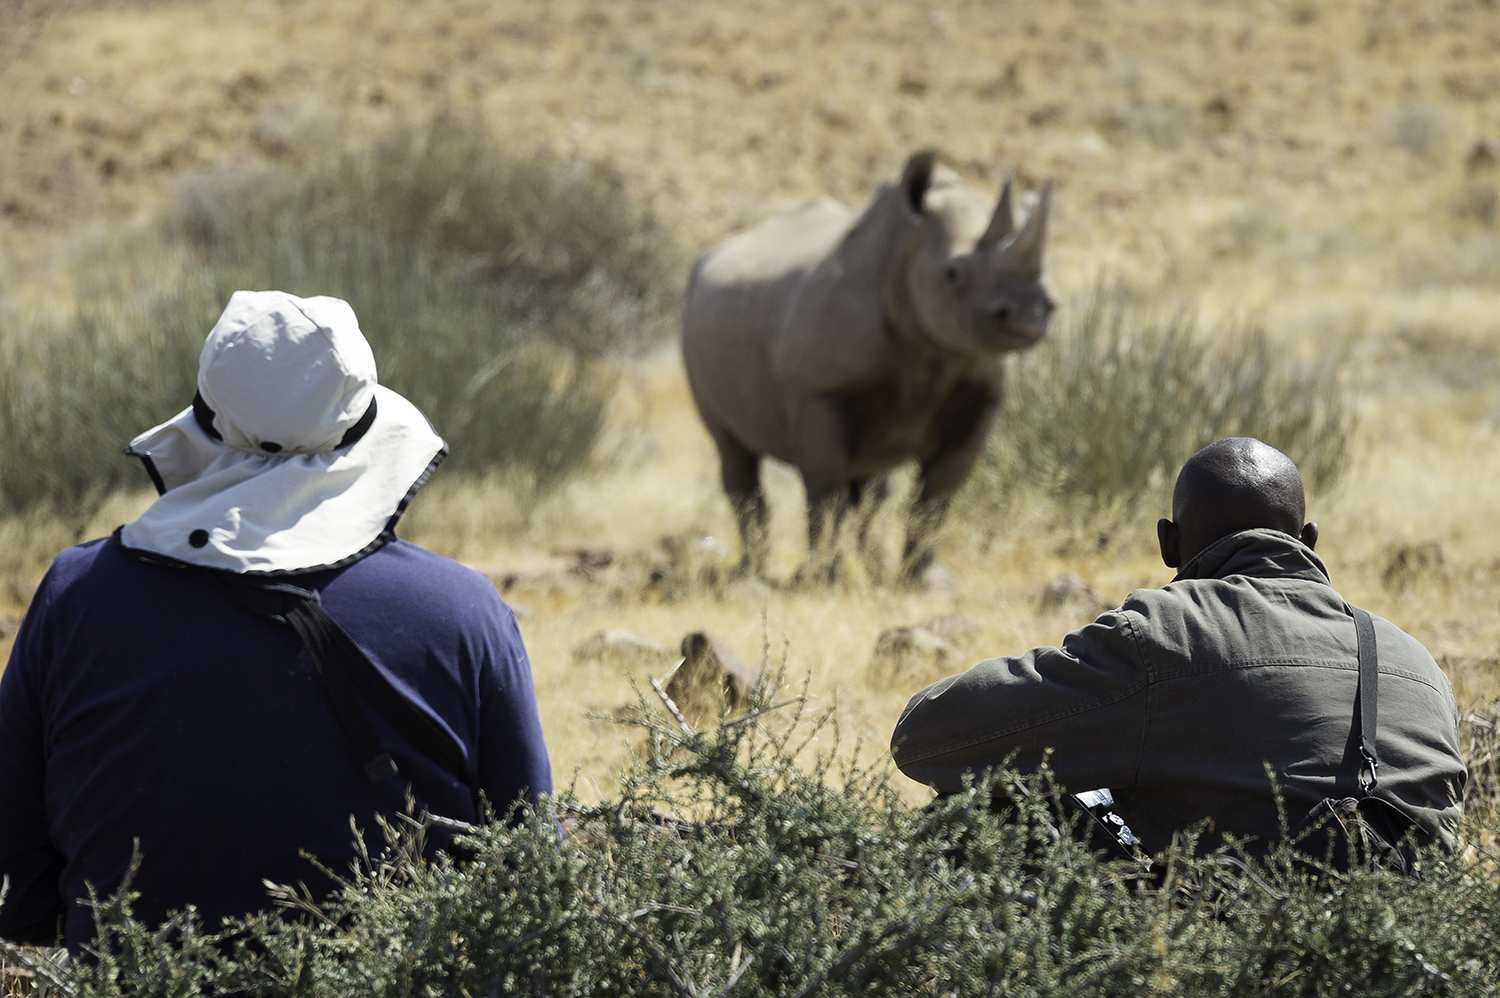 Desert Rhino Camp Secures a Future for Critically-Endangered